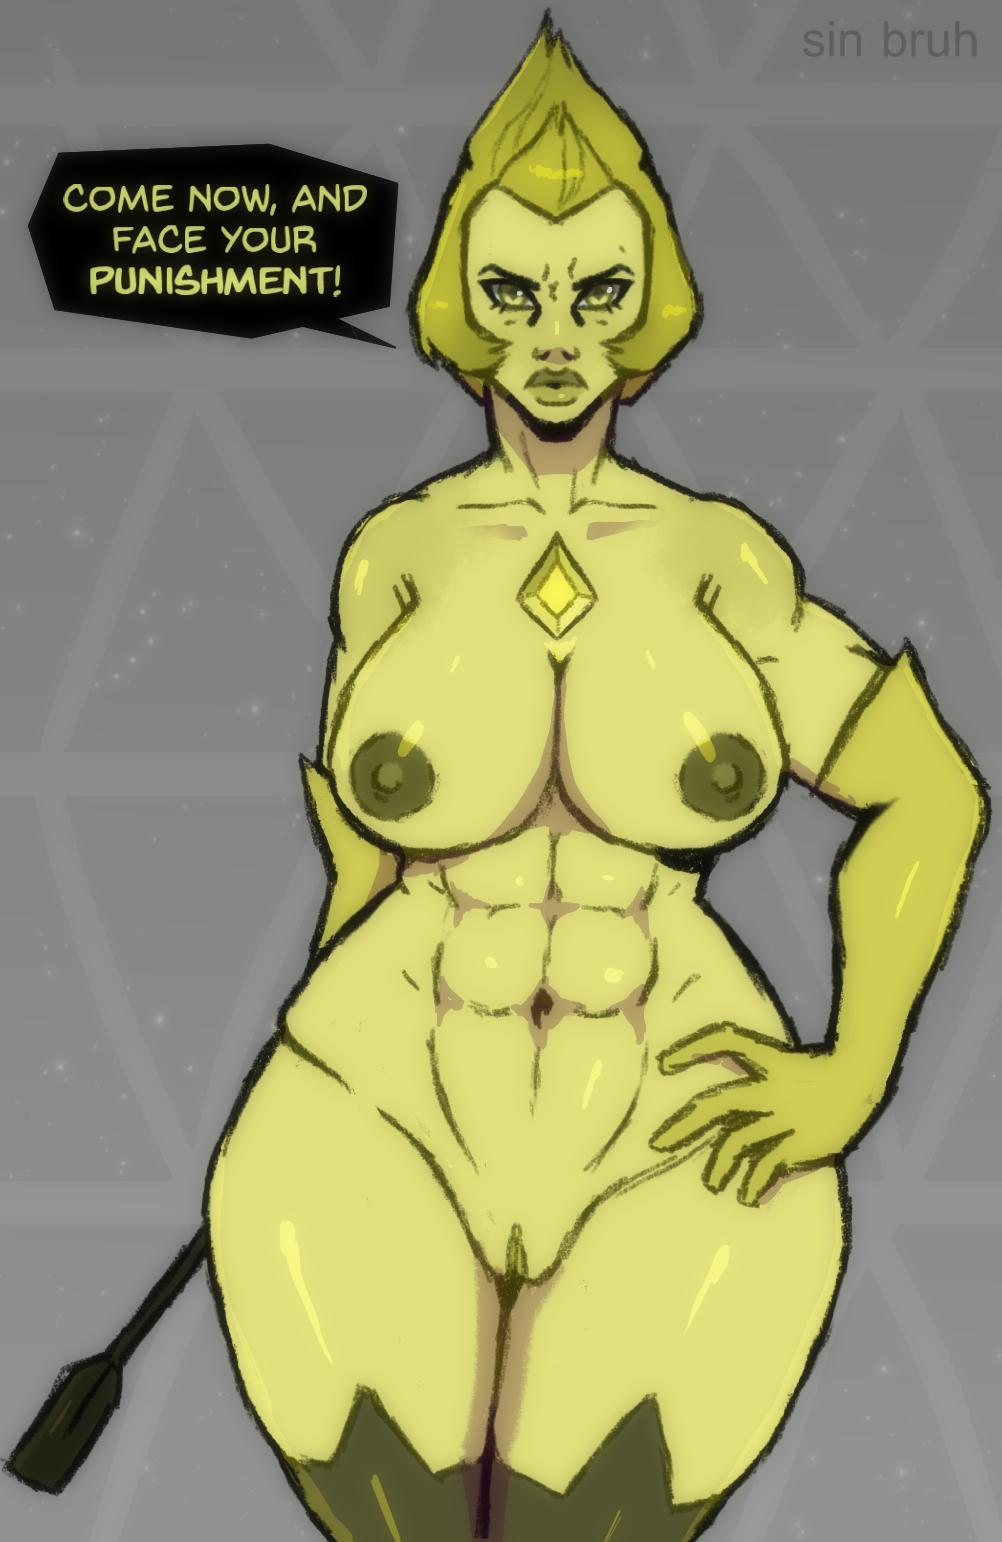 diamond steven and universe yellow blue My little pony gay porn